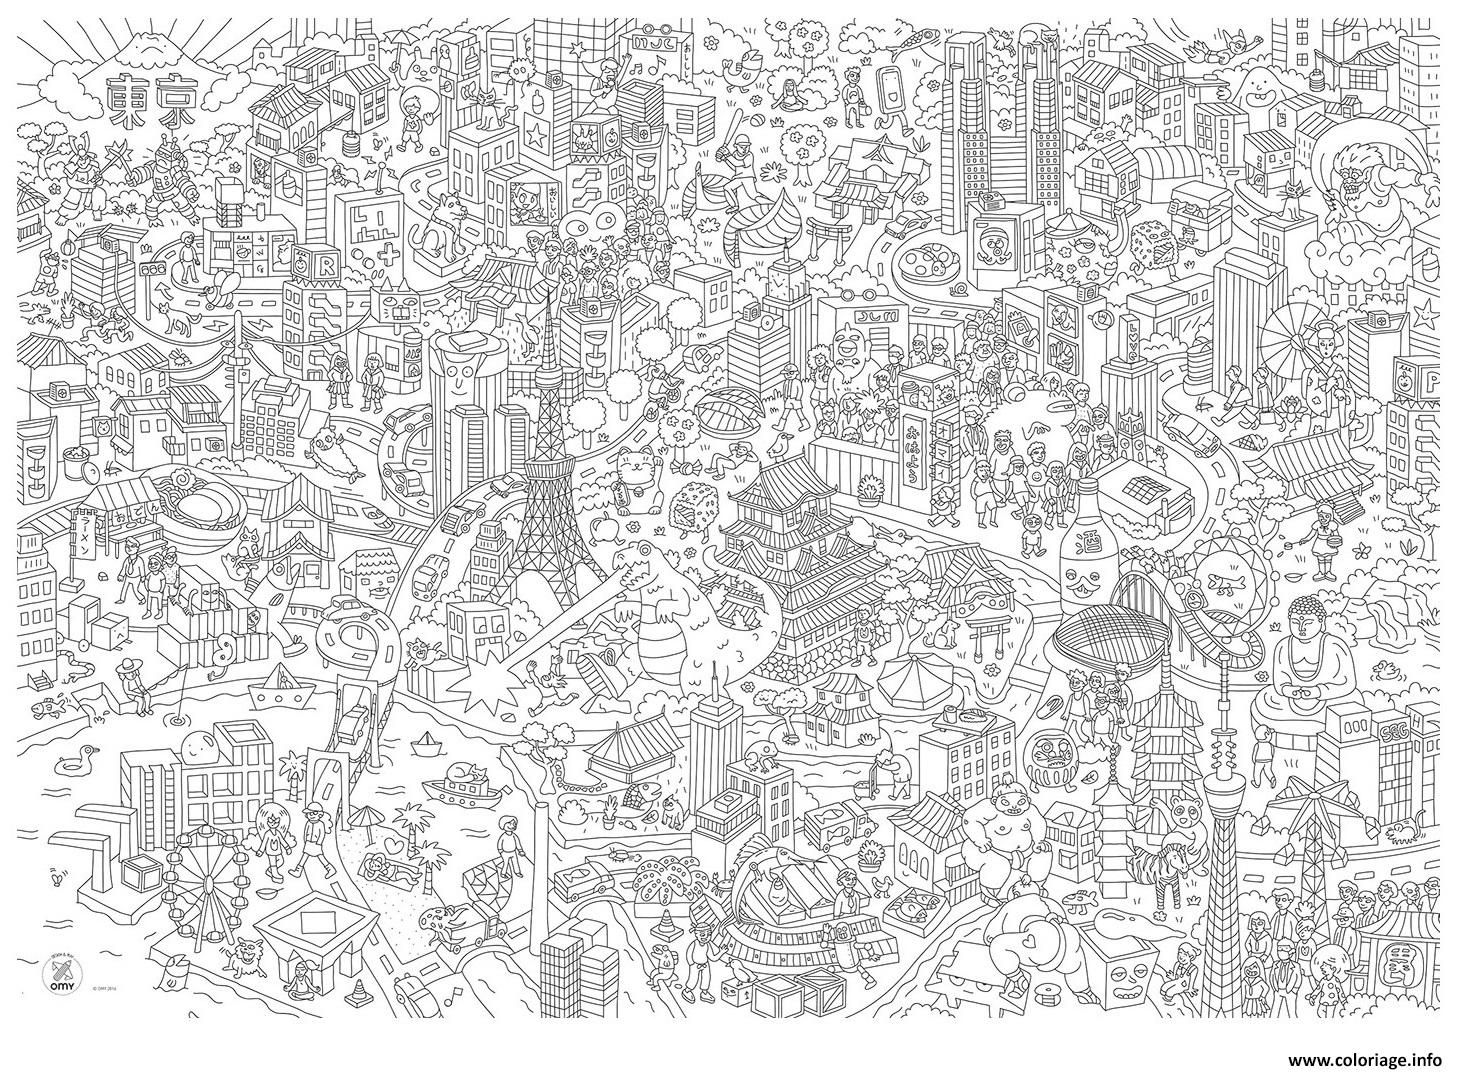 Coloriage Xxl Omy Grand Poster A Colorier Tokyo A Imprimer Coloriage Xxl Coloriage Geant Coloriage